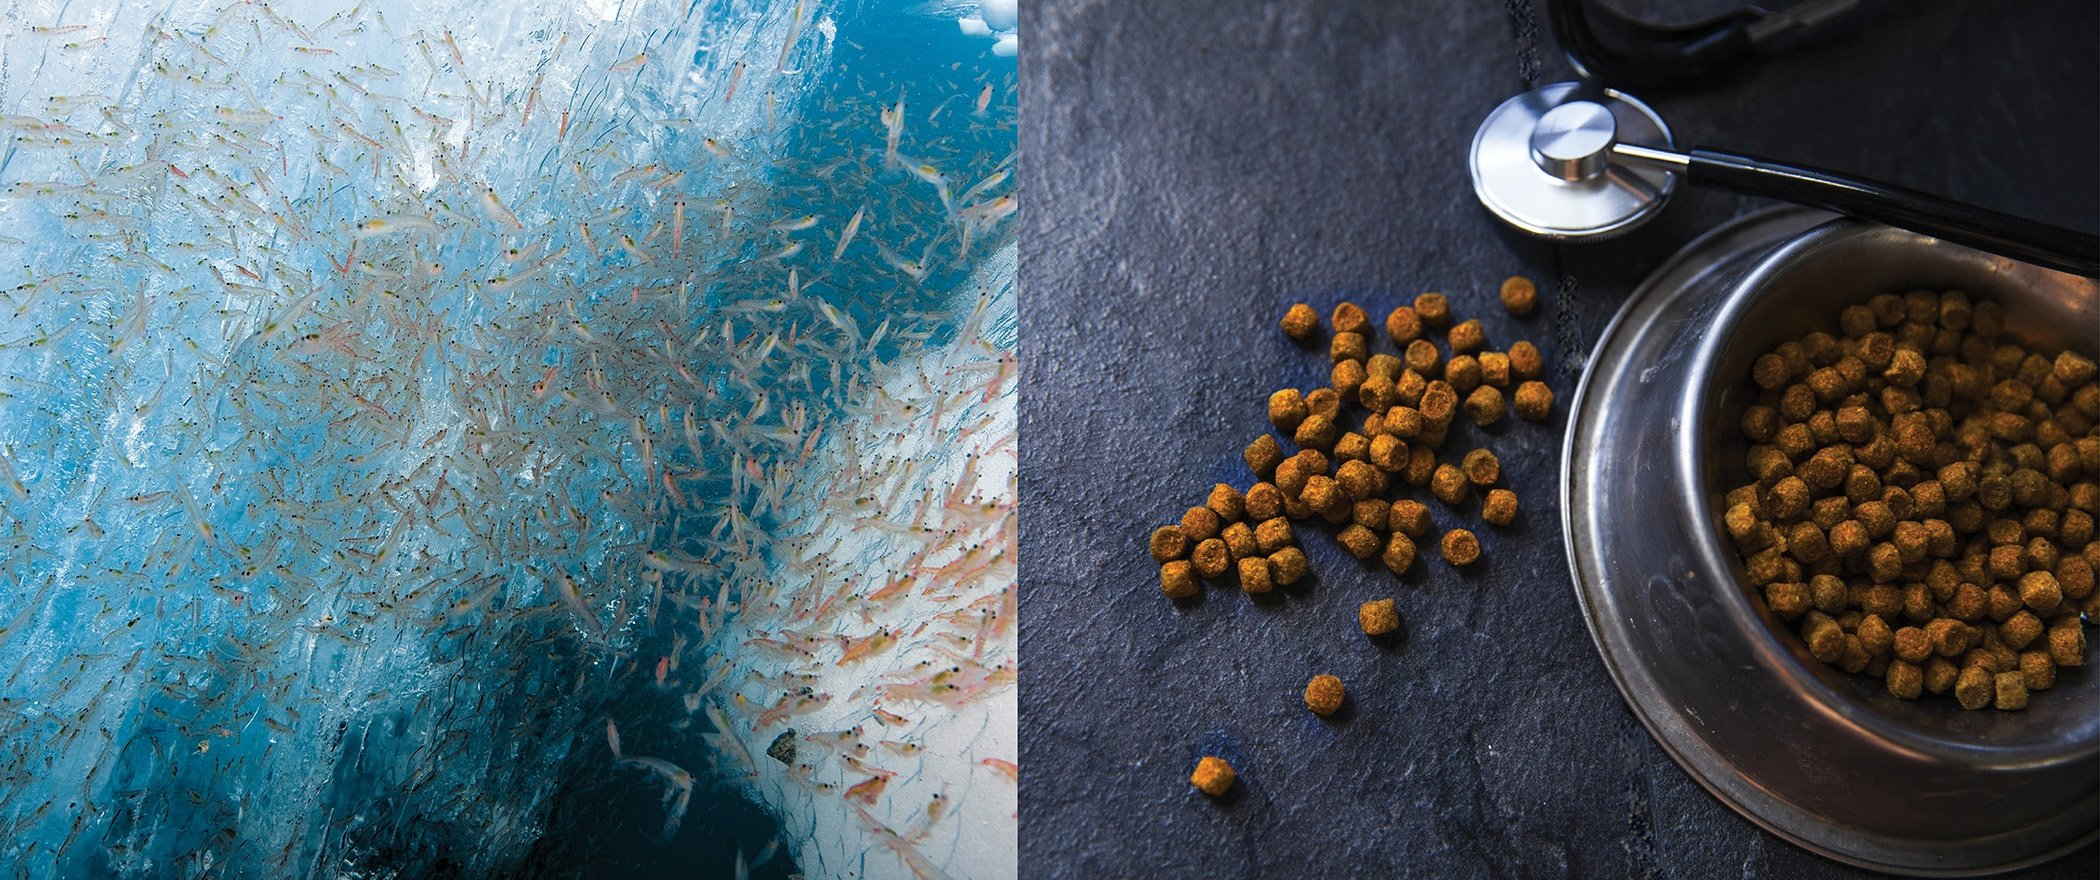 Krill for pet food.jpg